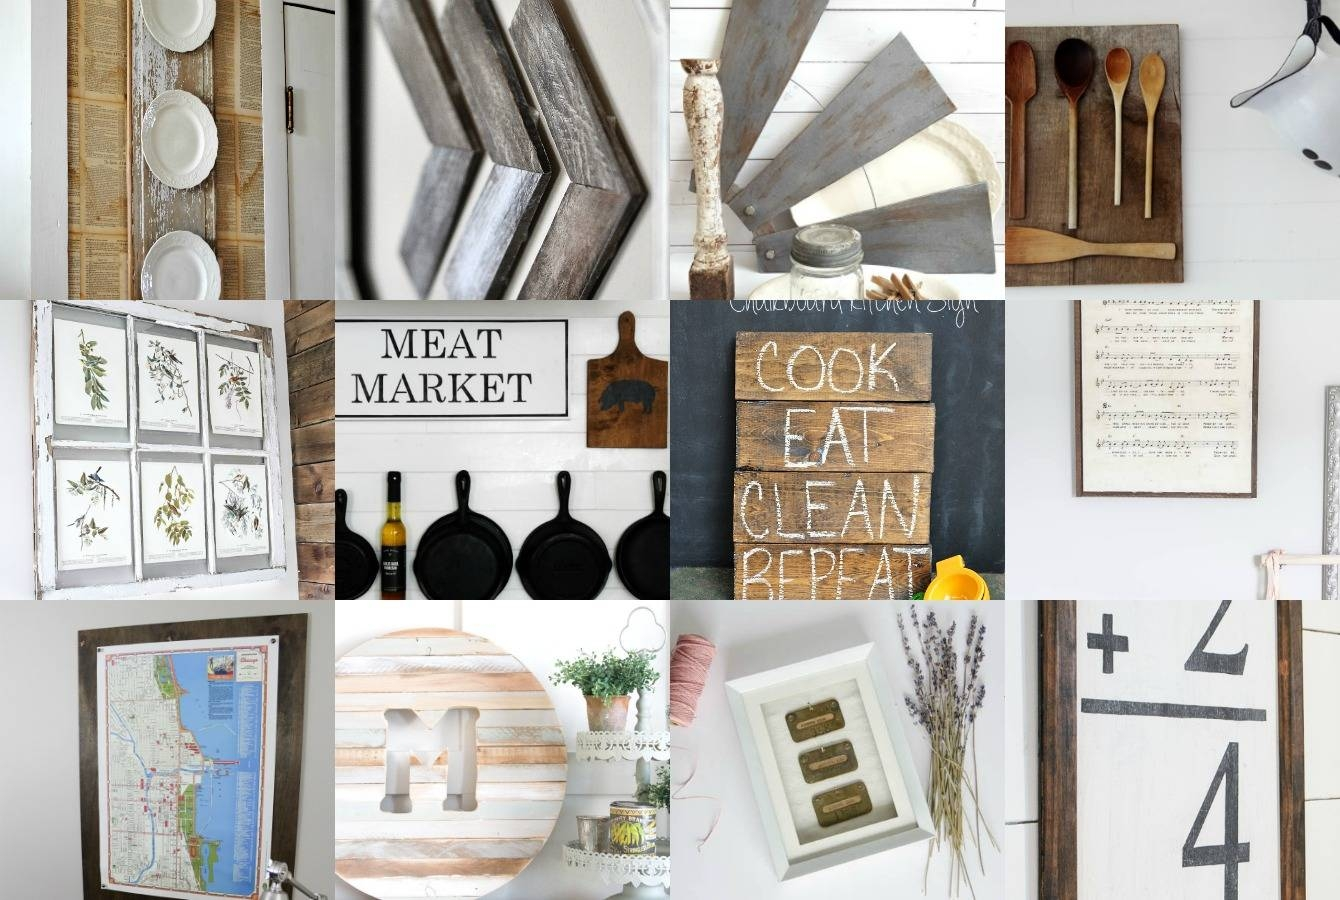 Diy Farmhouse Wall Decor Inspiration – The Crazy Craft Lady With Regard To Most Popular Farmhouse Wall Art (View 11 of 25)